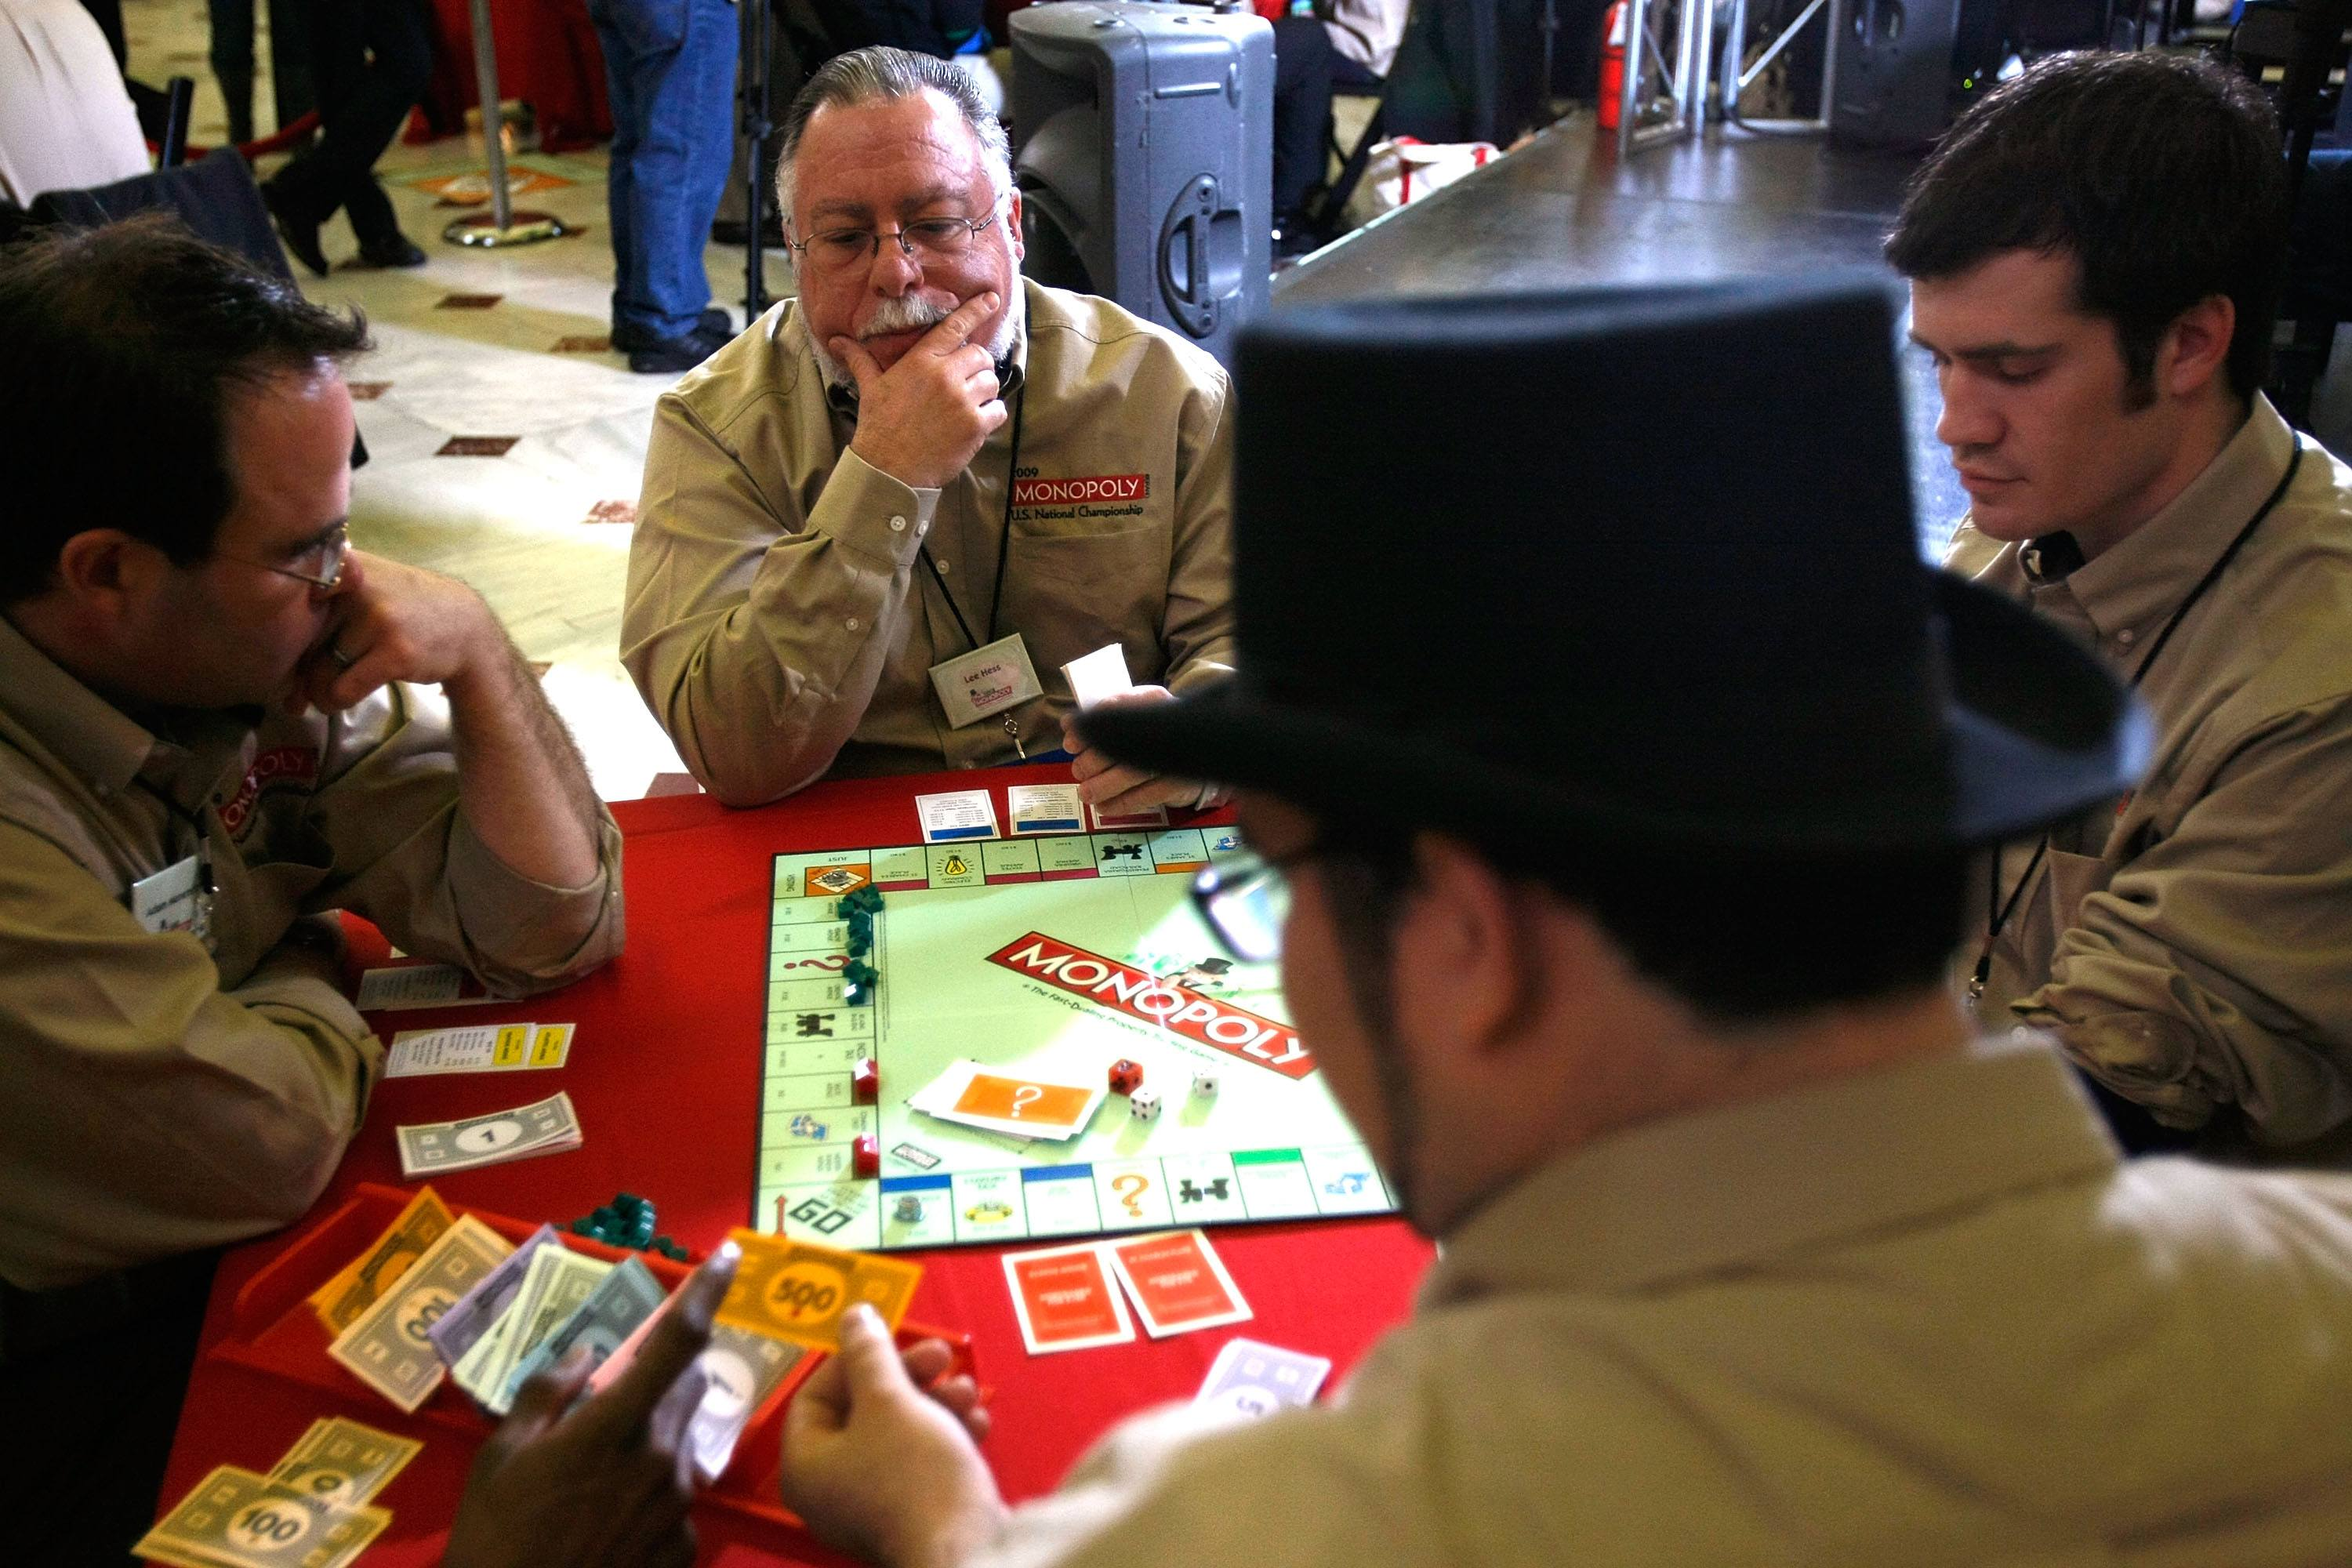 Players, clockwise from left, Adam Menendez of Portland, Oregon, Lee Hess of Westlake Village, California, Adam Thiel of West Yellowstone, Montana, and Hector Trujillo of El Segundo, California, compete during the Monopoly U.S. National Championship.